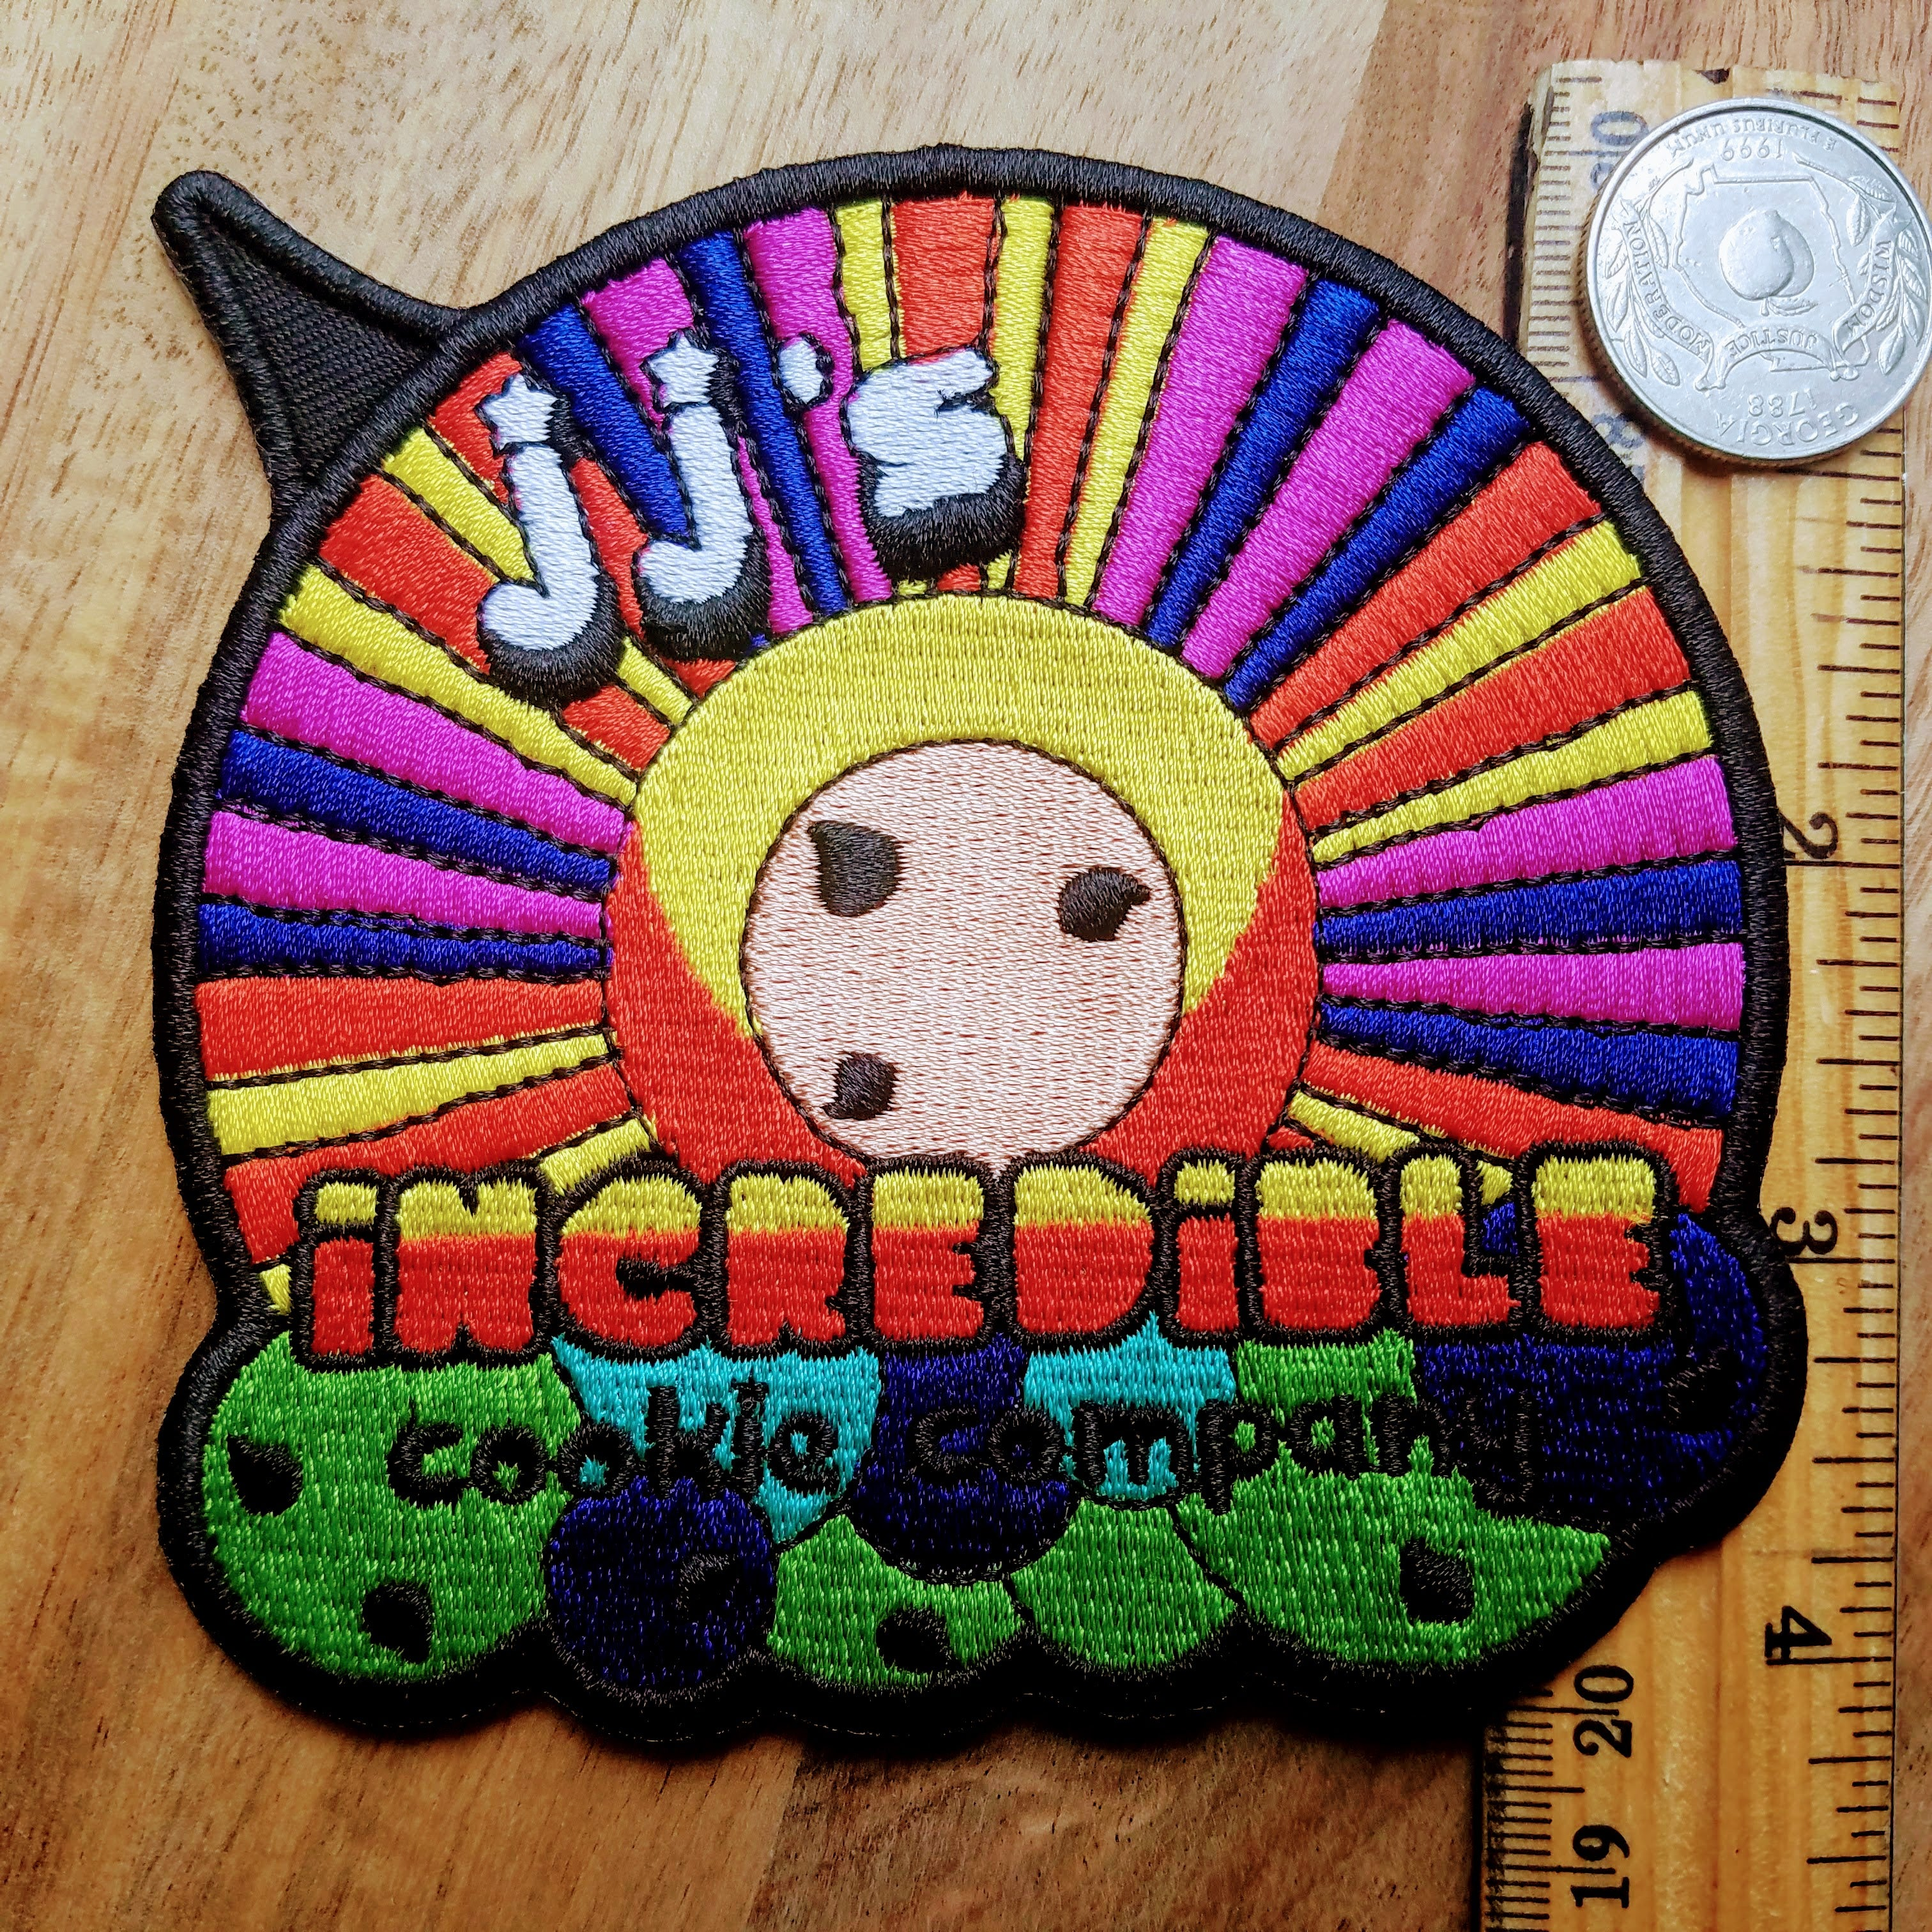 The Incredibles, Jack-Jack Cookie Company Inspired Iron-on Patch - Obscure Disney